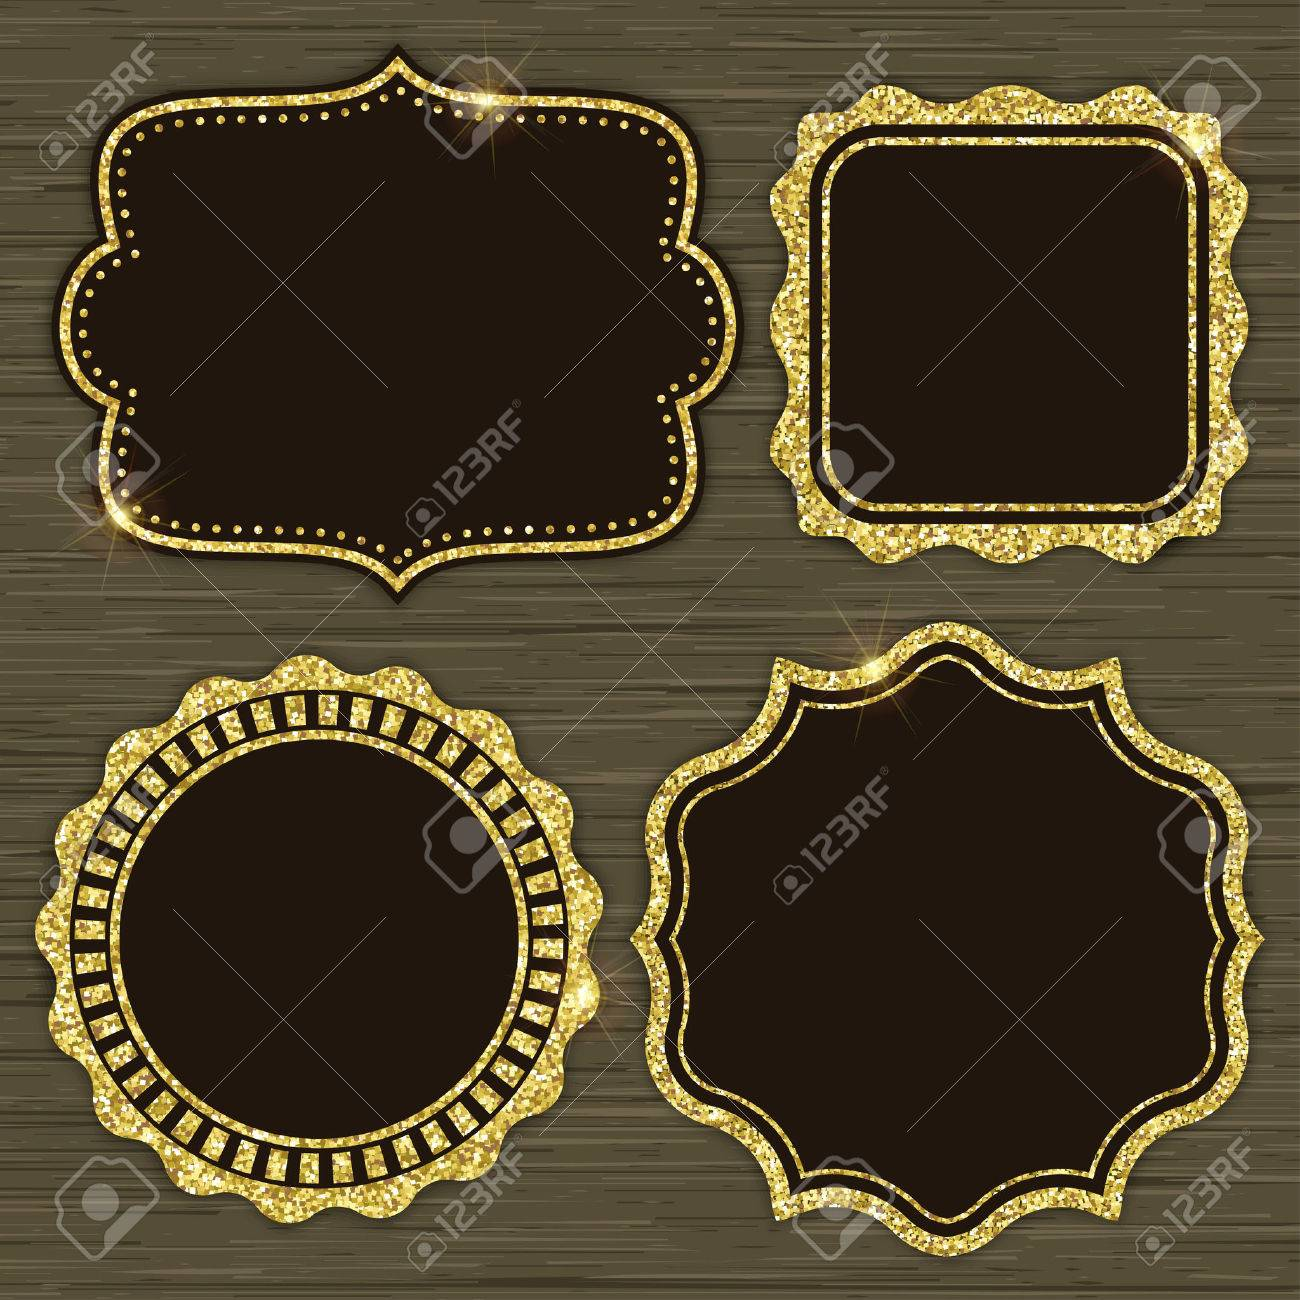 Set Of 4 Gold Glitter Frames For Holiday Designs Or Invitations ...